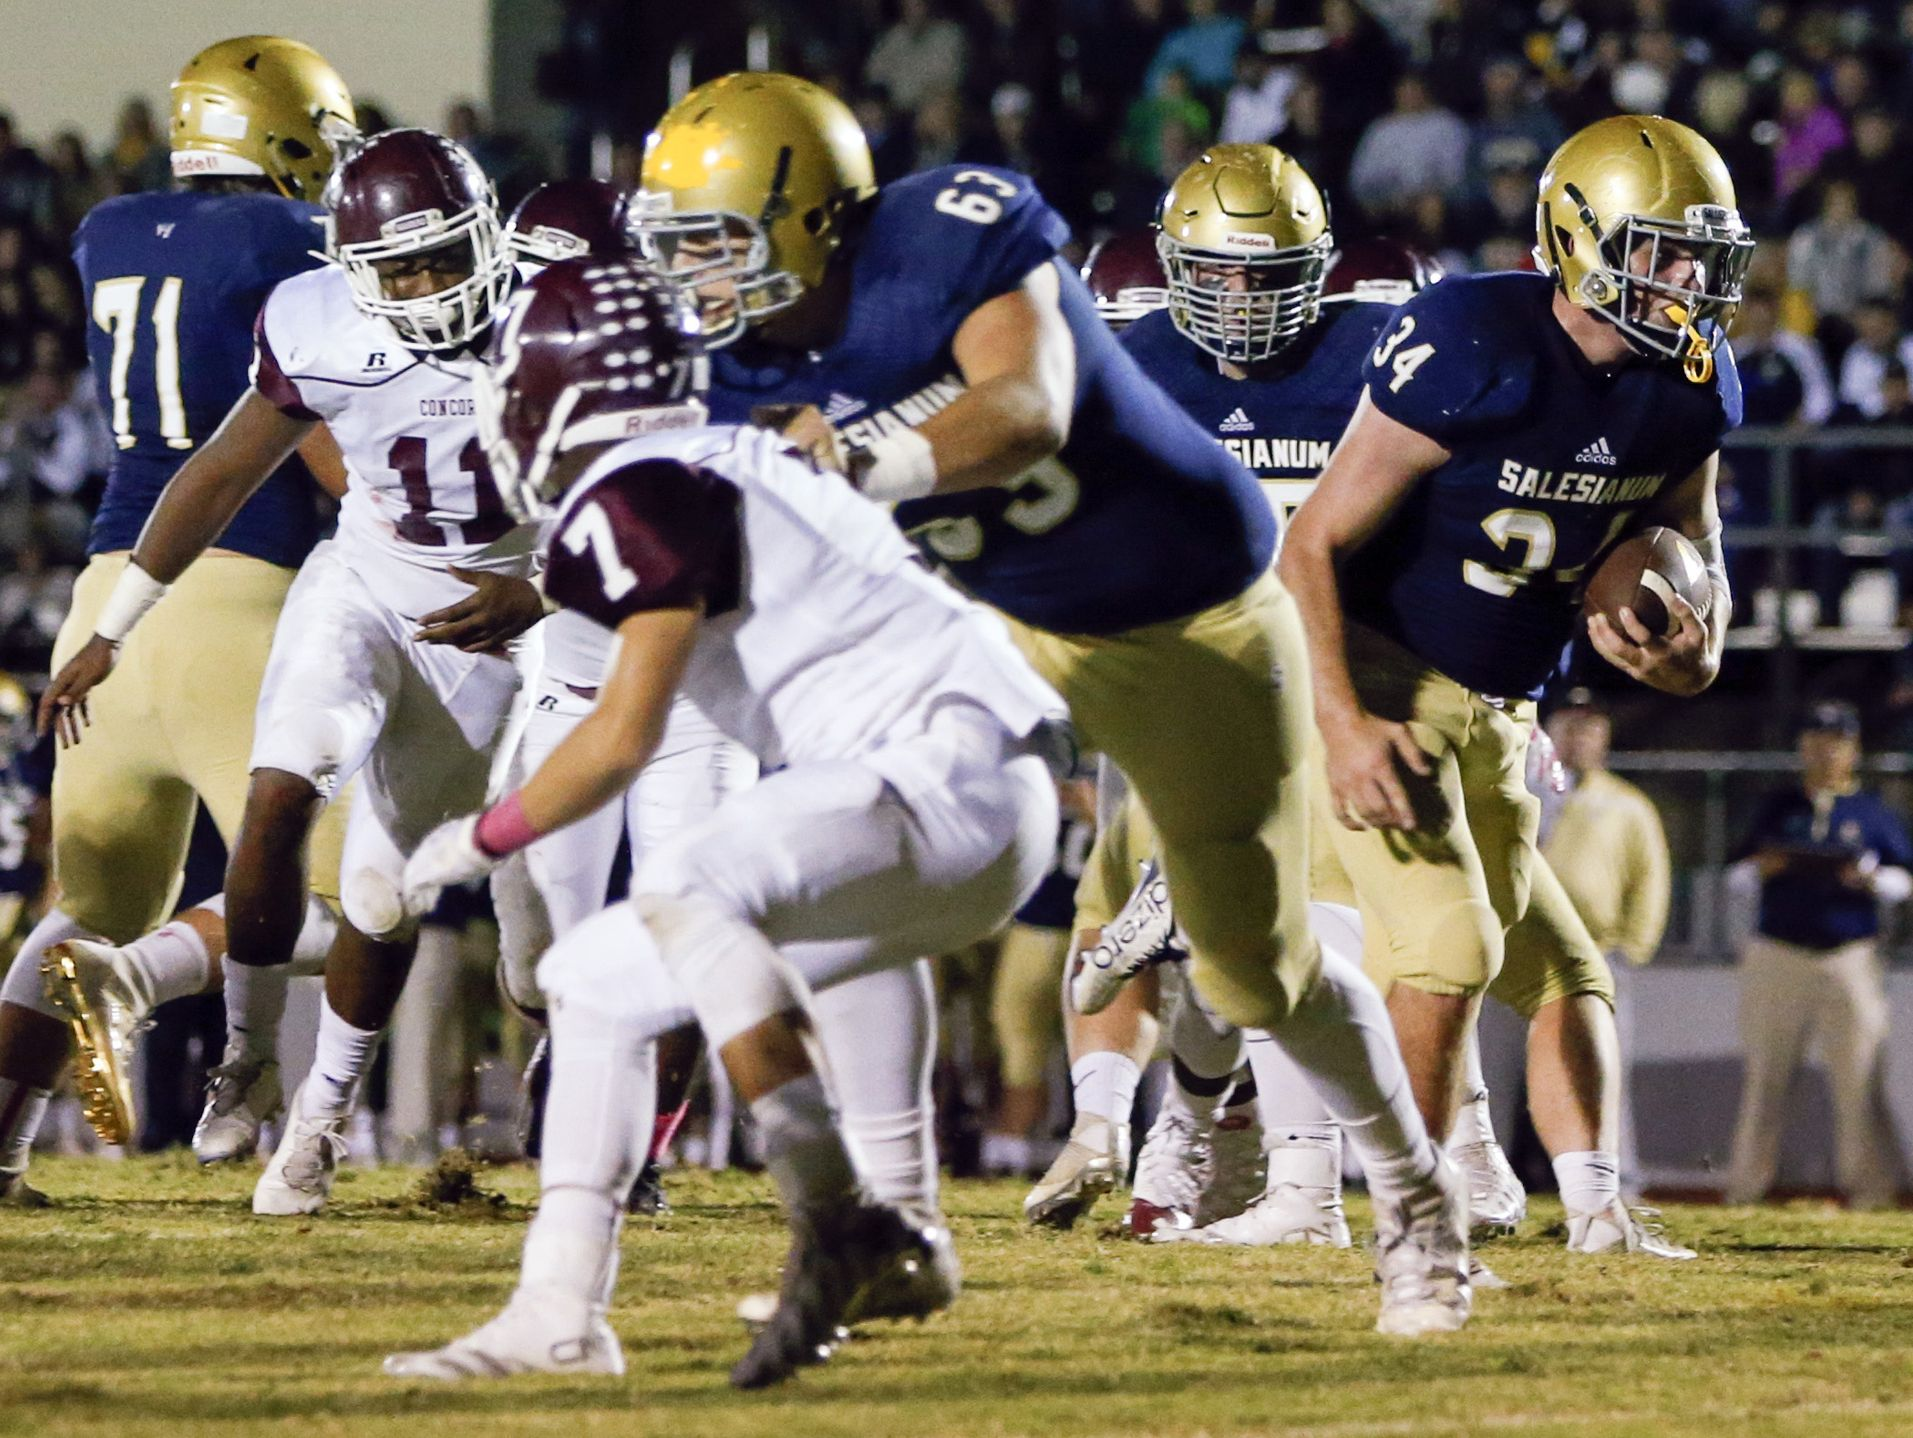 Salesianum's Peyton Mullin gets through his line, including blocker Domenico Marra (63) for a touchdown against Concord to open the scoring in the first quarter at Baynard Stadium Saturday.